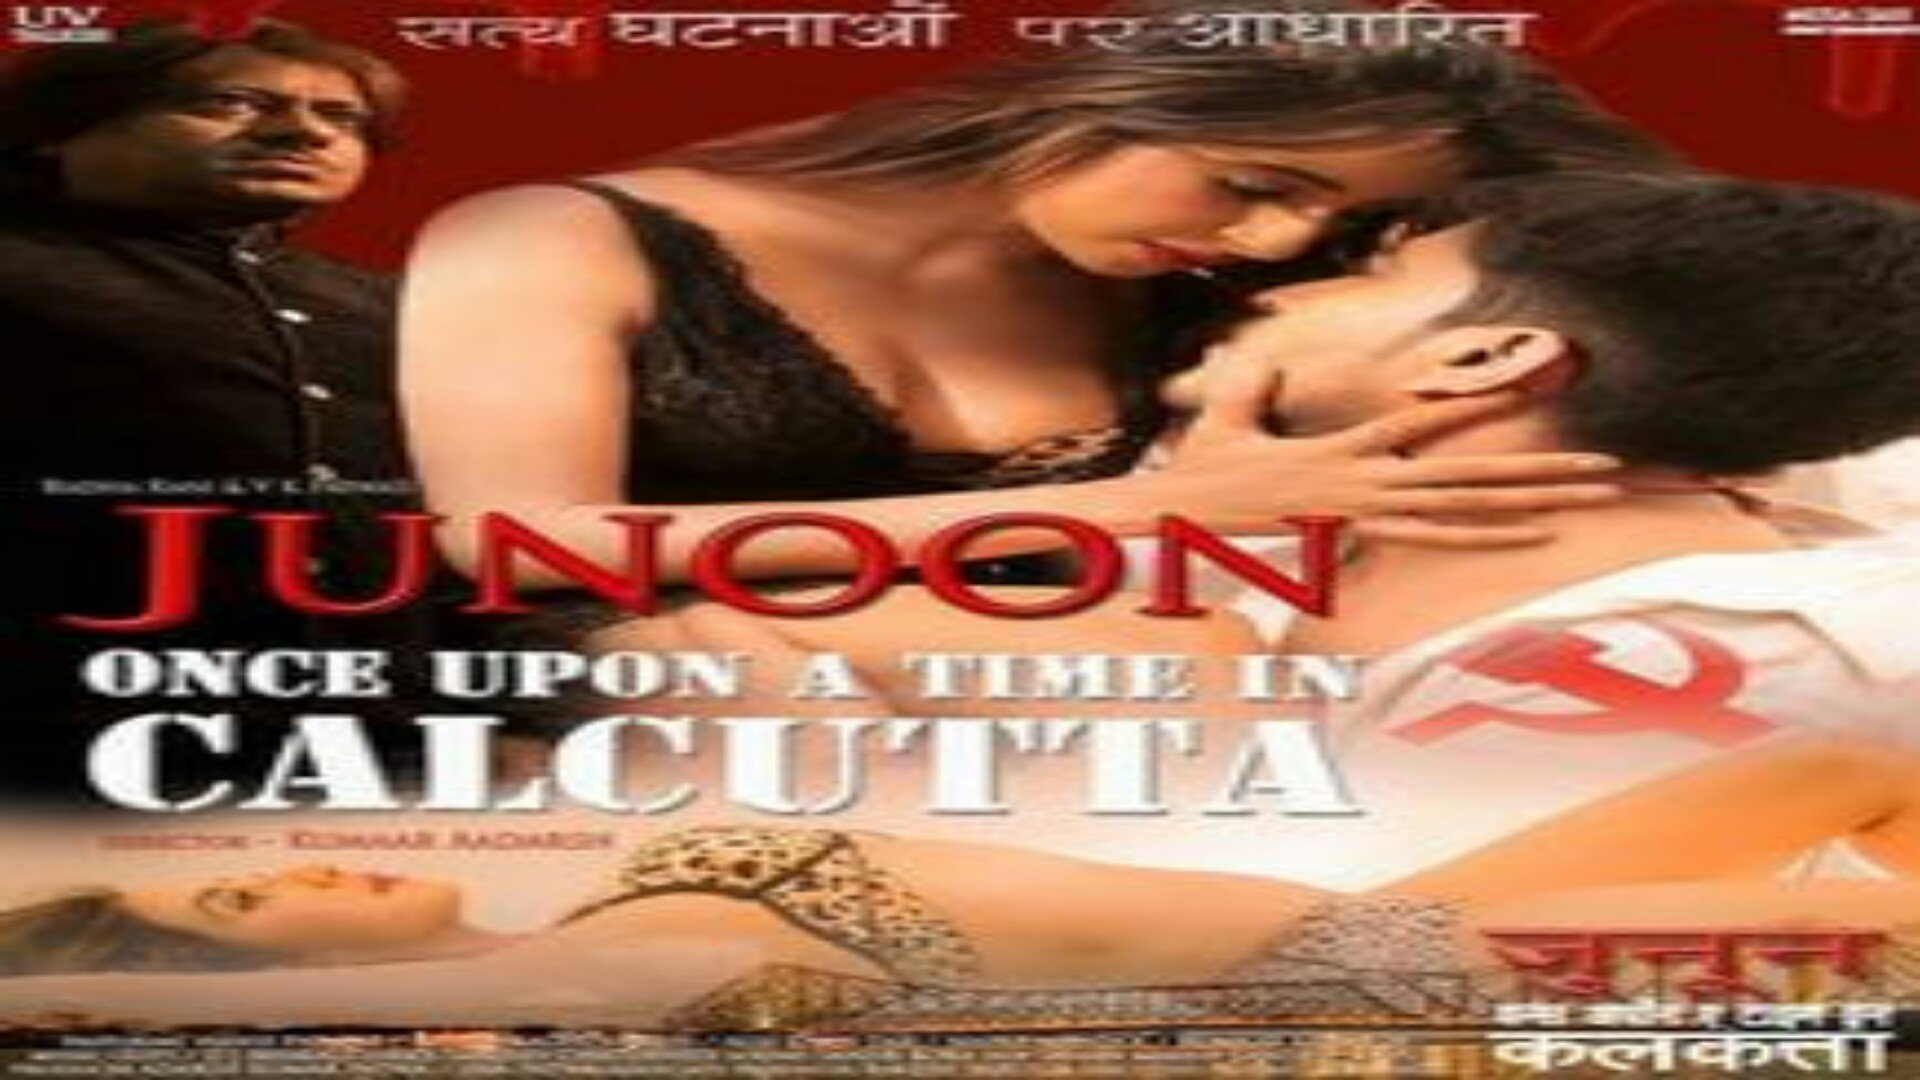 Junoon once upon a time in Calcutta